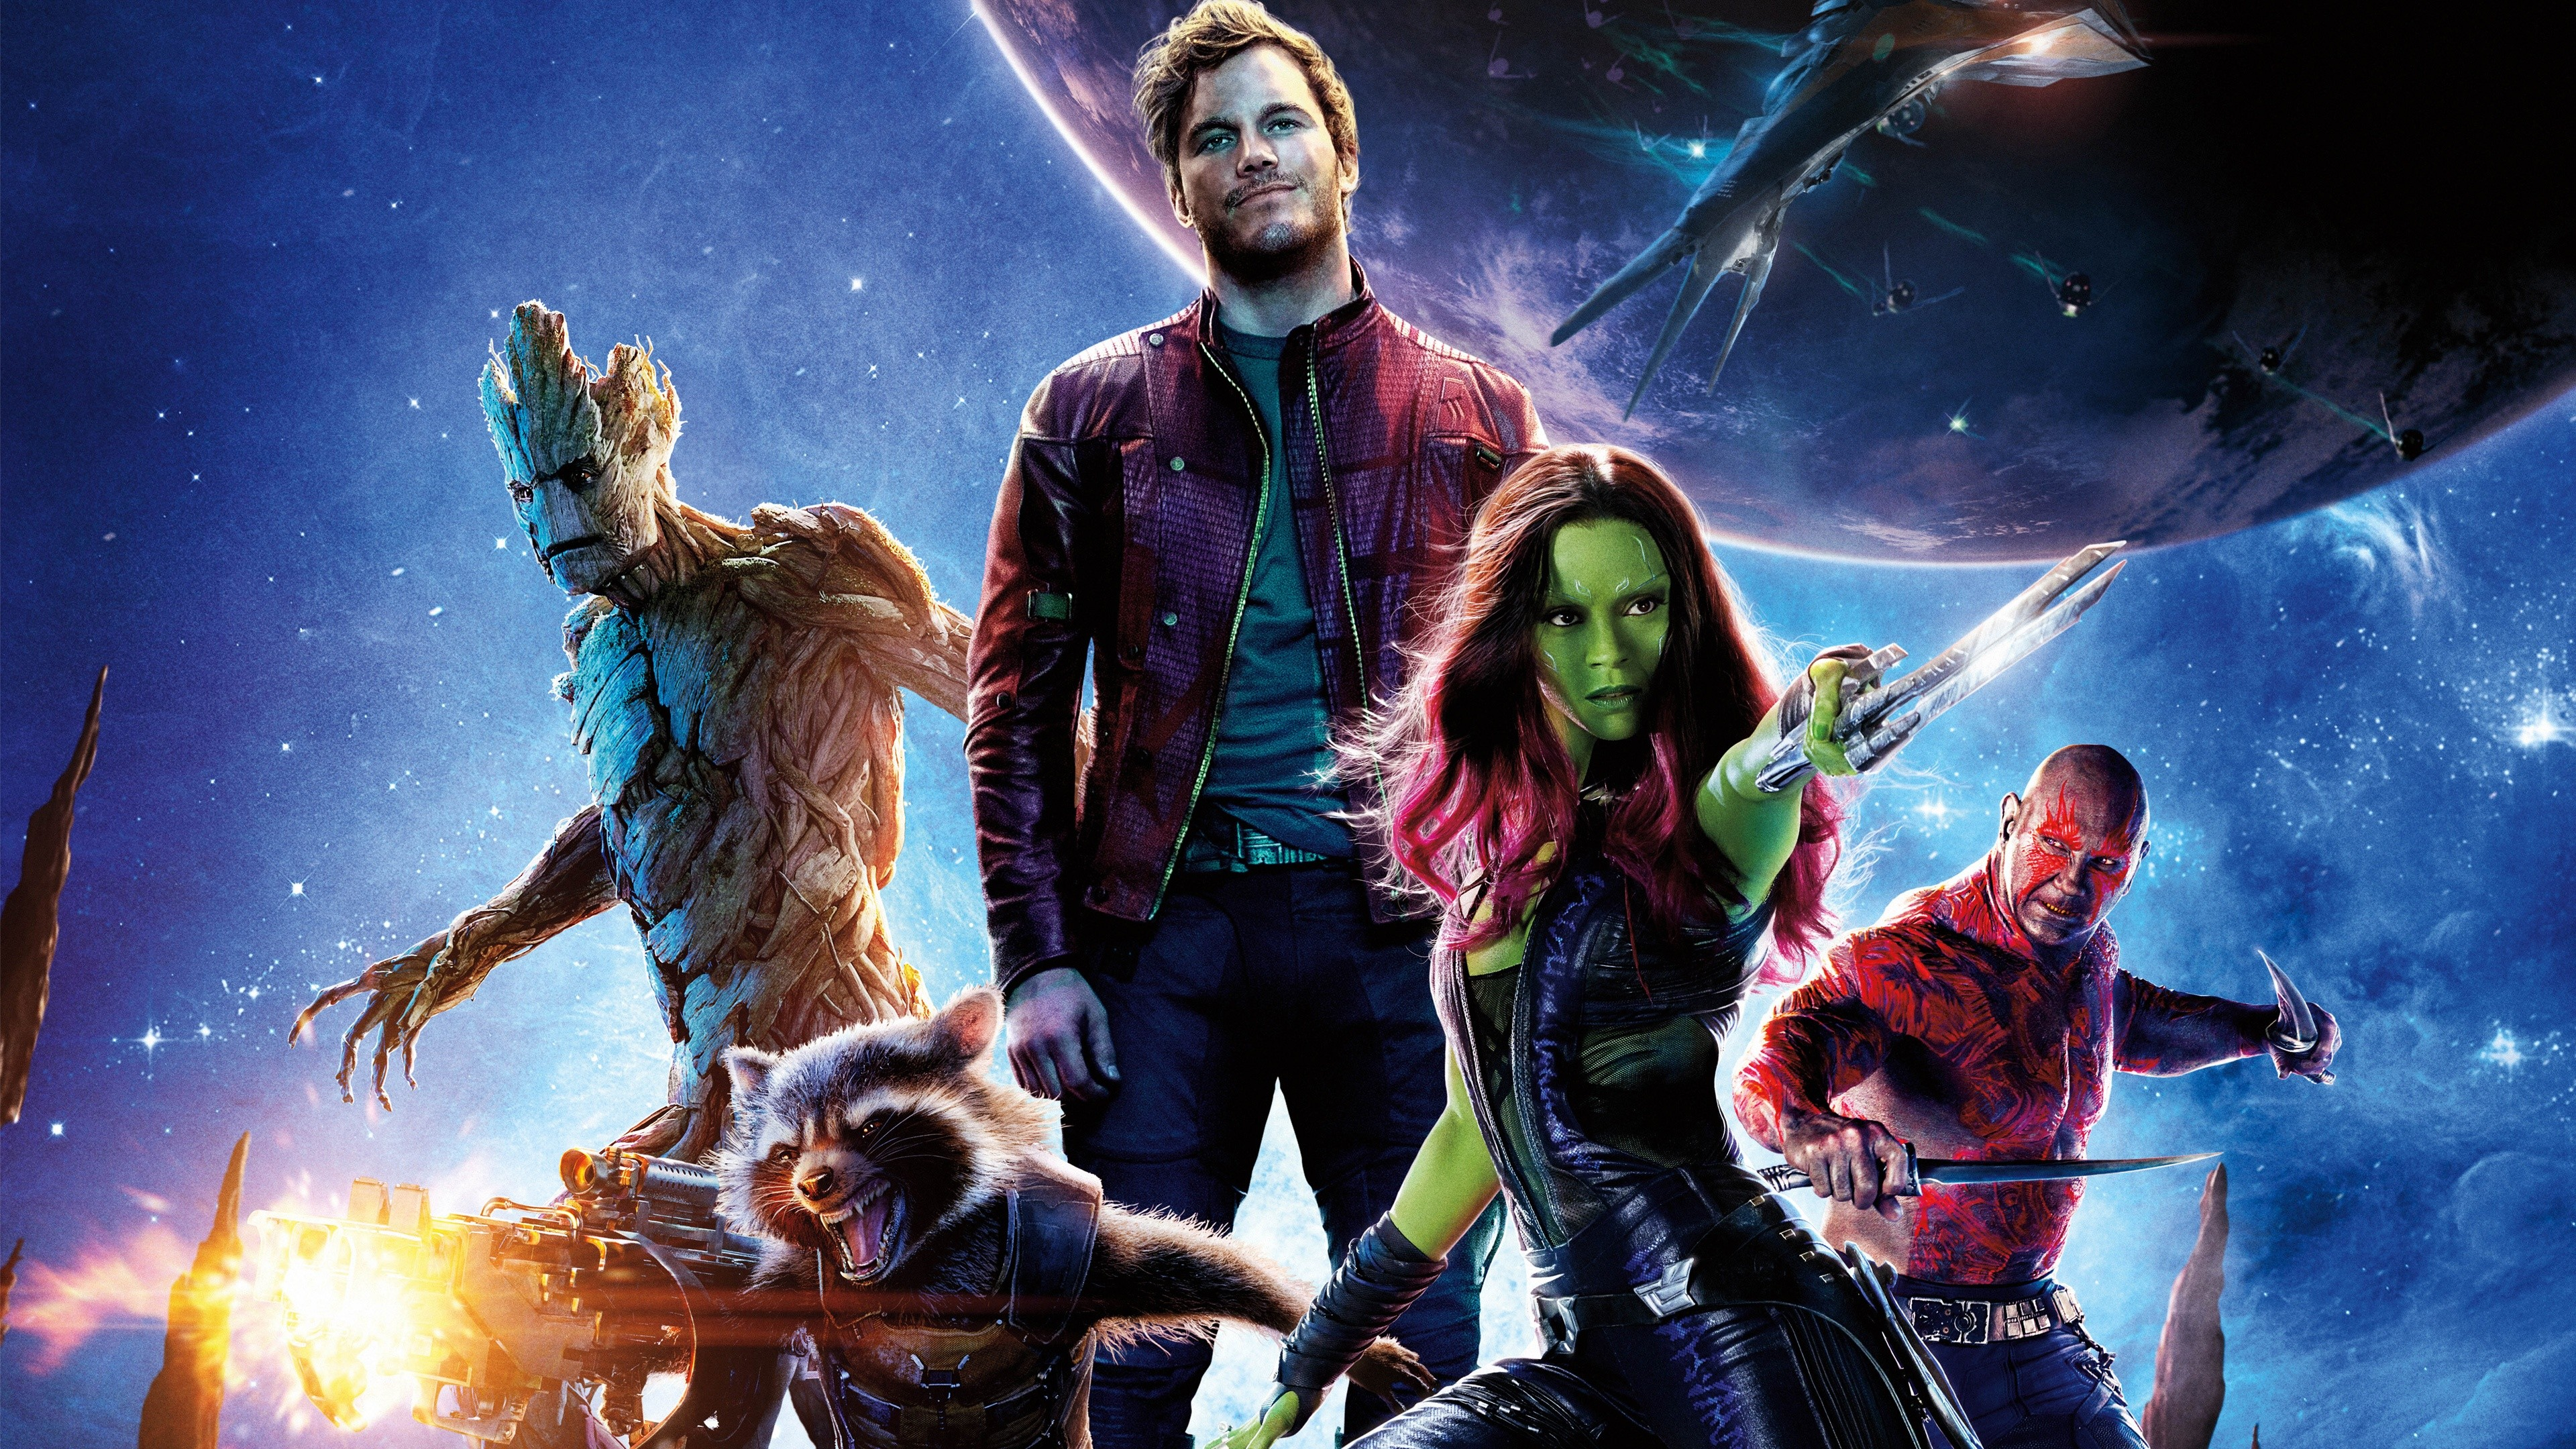 guardians of the galaxy movie poster 4k 1553074266 - Guardians Of The Galaxy Movie Poster 4k - star lord wallpapers, rocket raccoon wallpapers, movies wallpapers, hd-wallpapers, guardians of the galaxy wallpapers, groot wallpapers, gamora wallpapers, drax the destroyer wallpapers, 4k-wallpapers